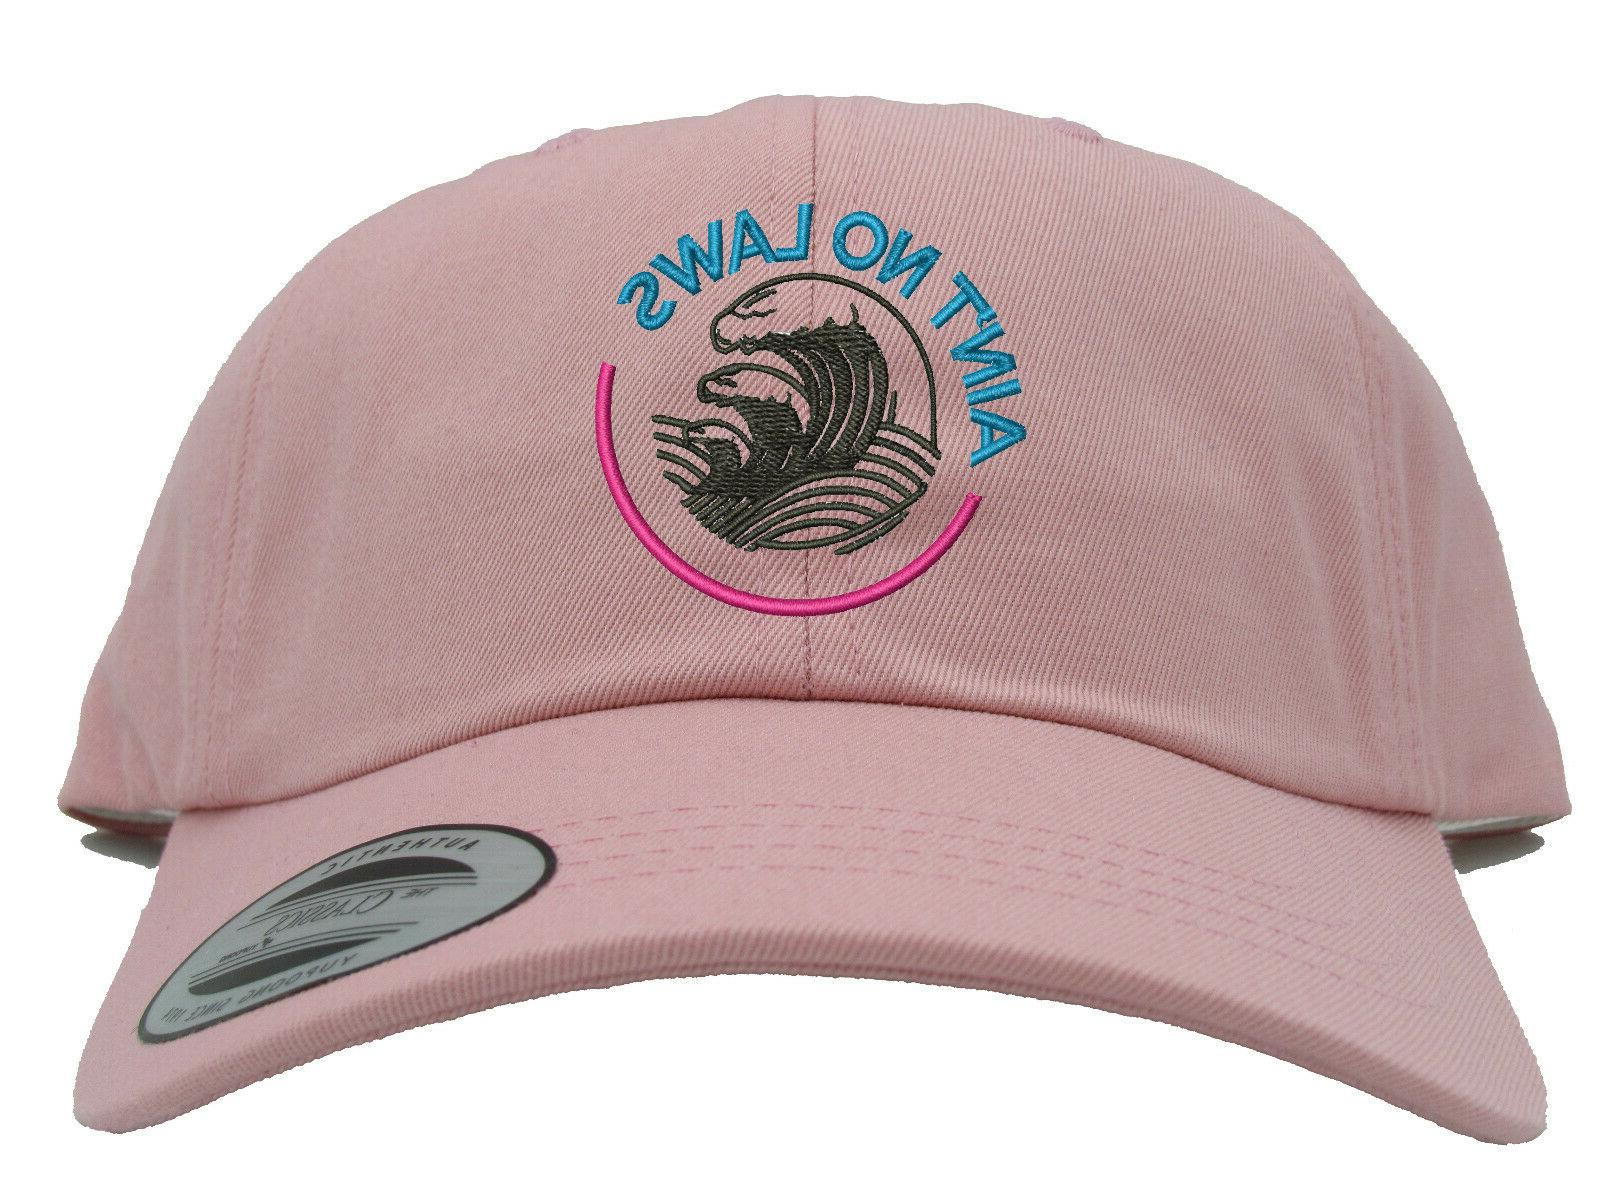 White Laws When You're Claws Embroidered Hat